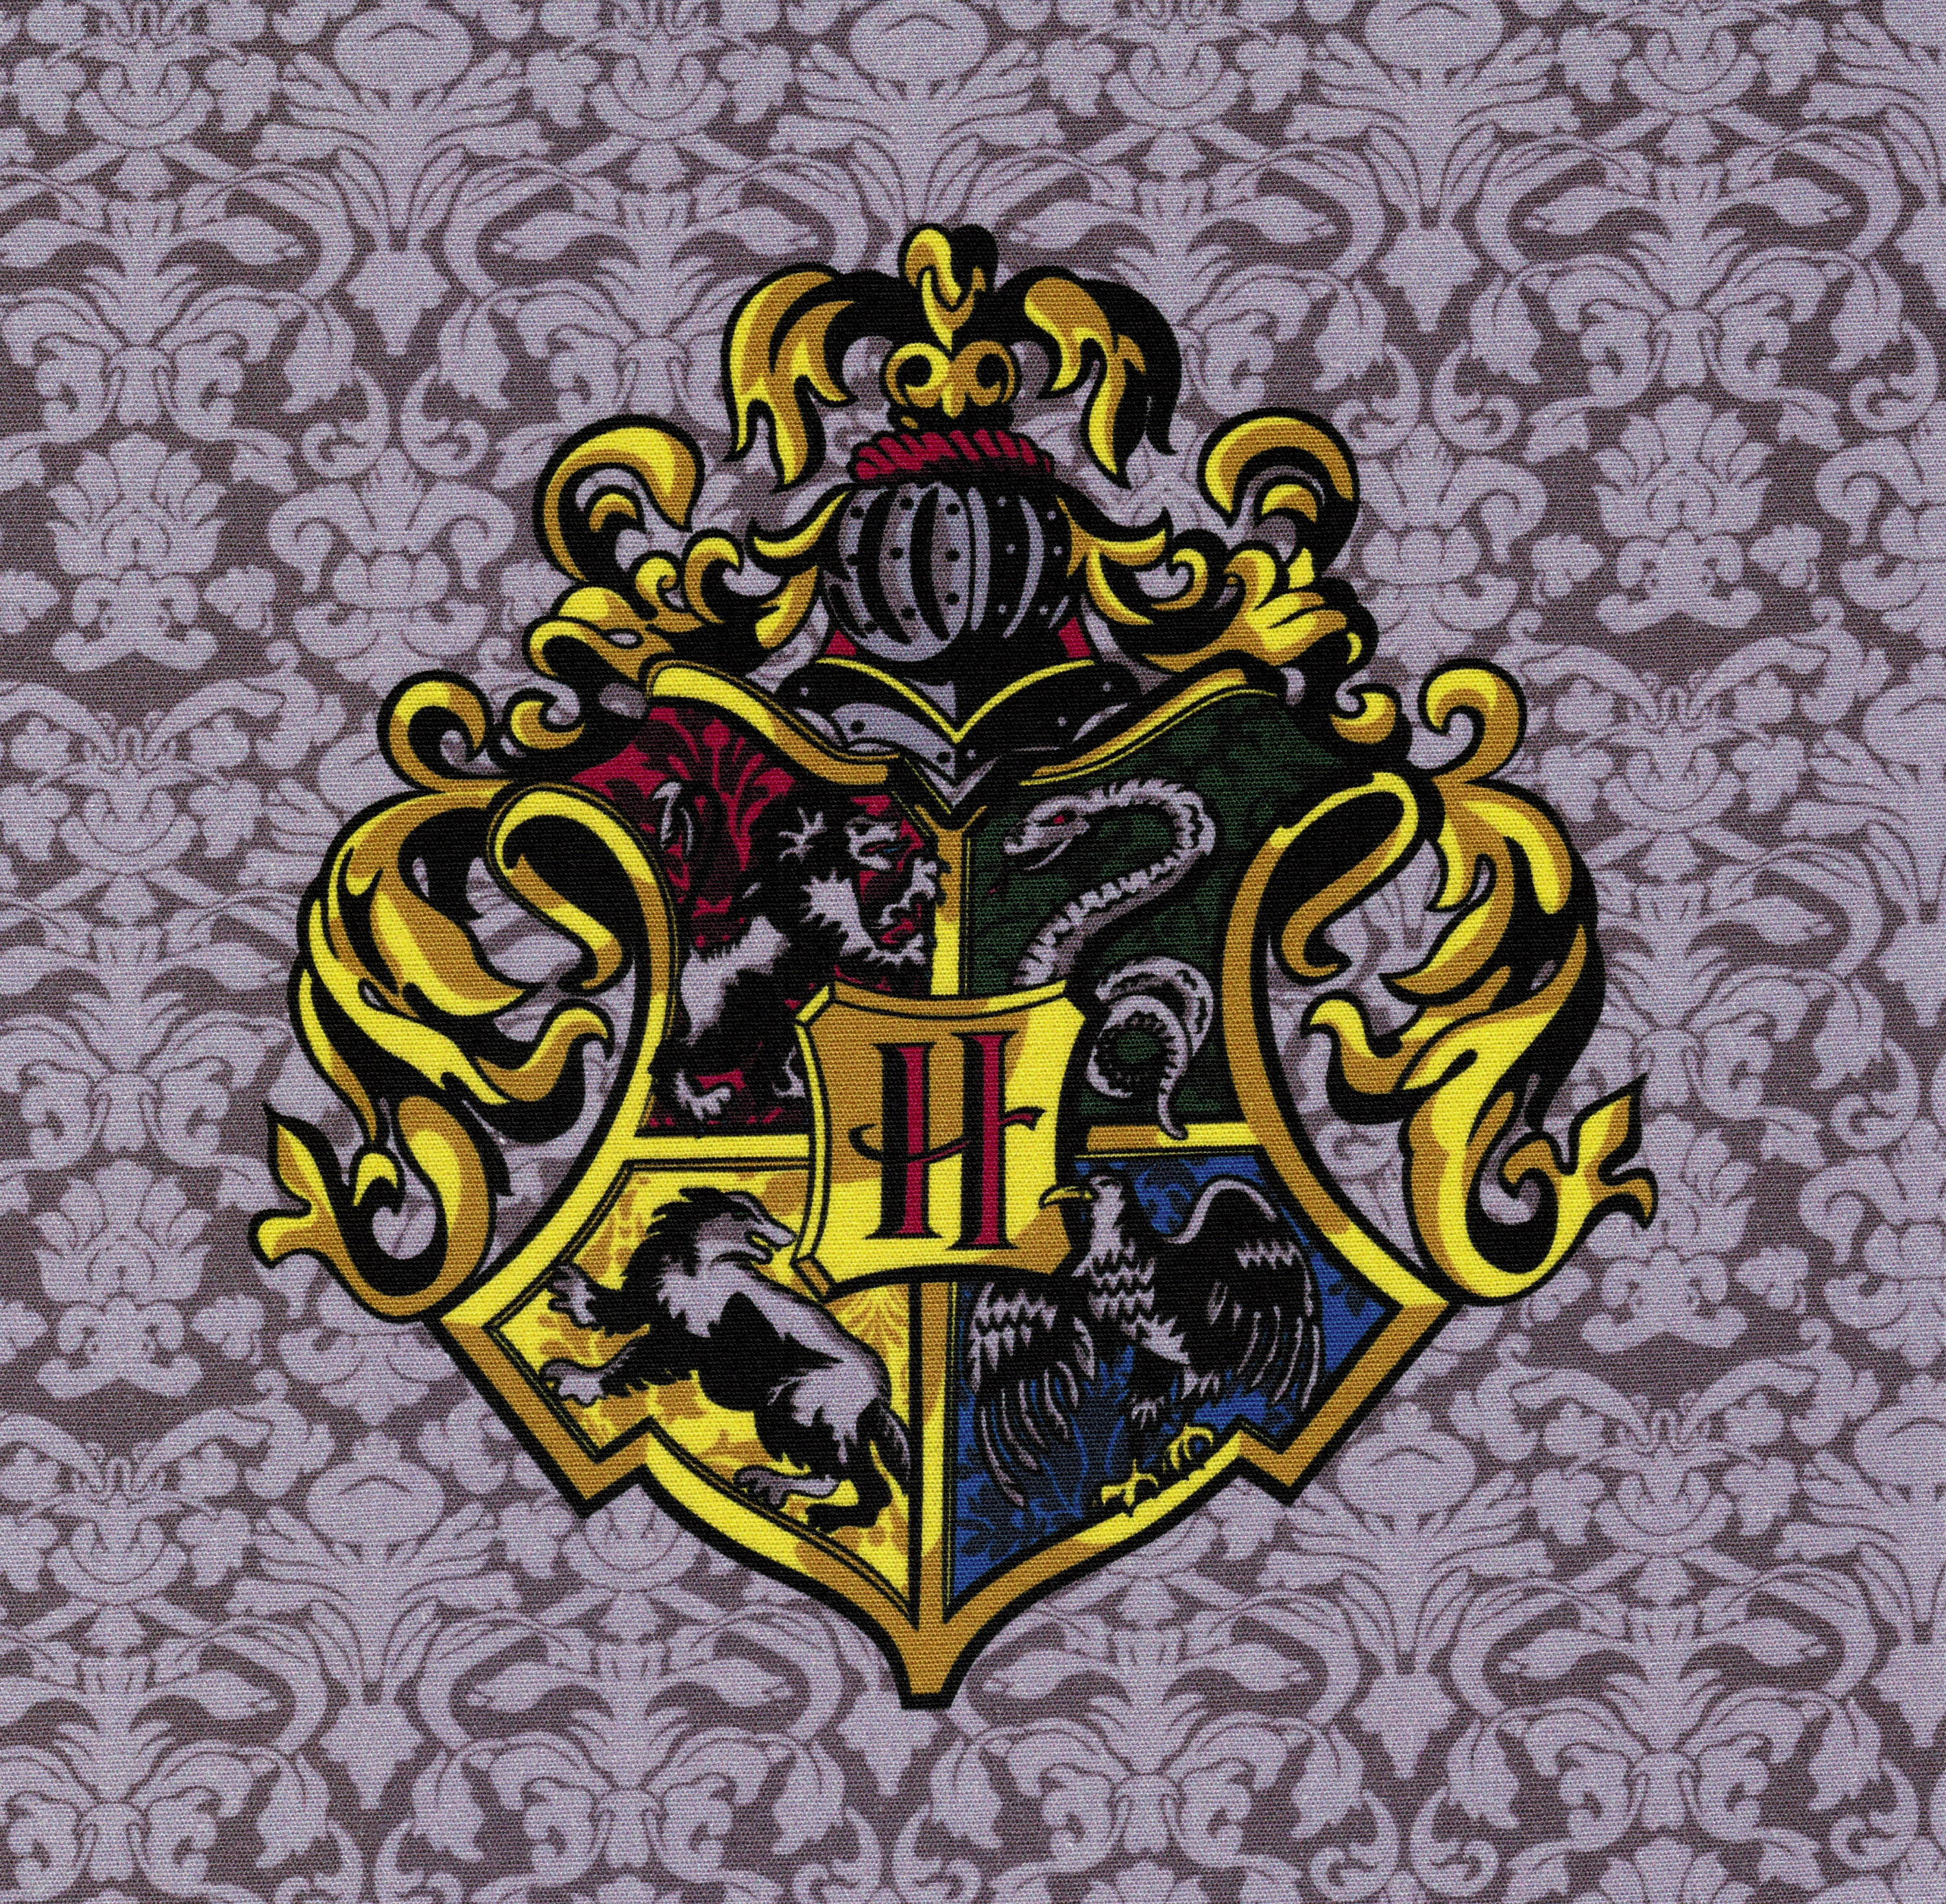 It's just an image of Old Fashioned Hogwarts Crest Printable